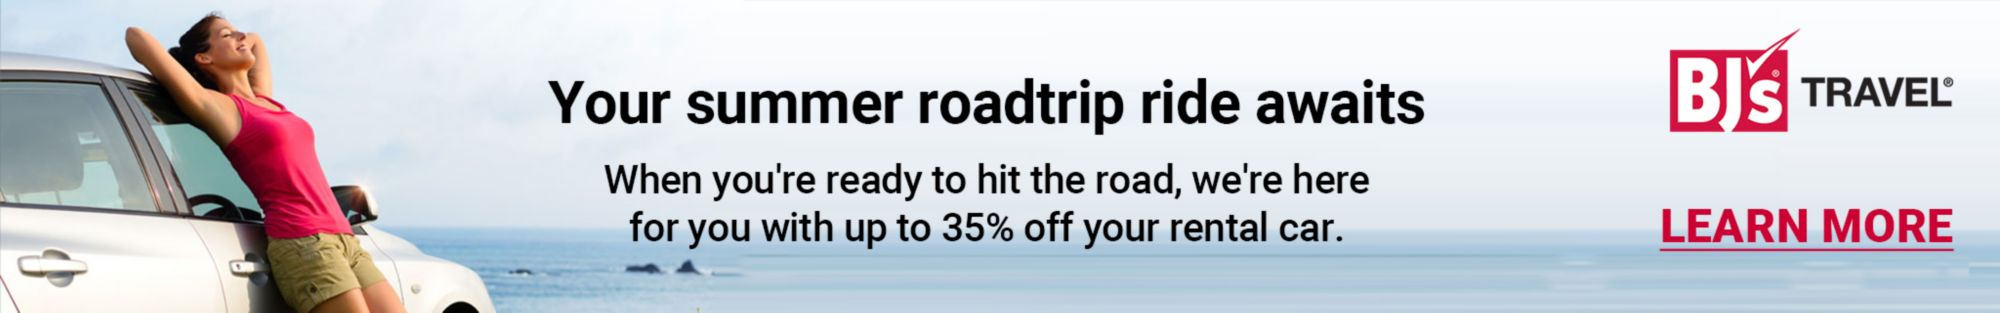 Your summer roadtrip awaits. When you're ready to hit the road, we're here for you with up to 35% off your rental car. Order today!